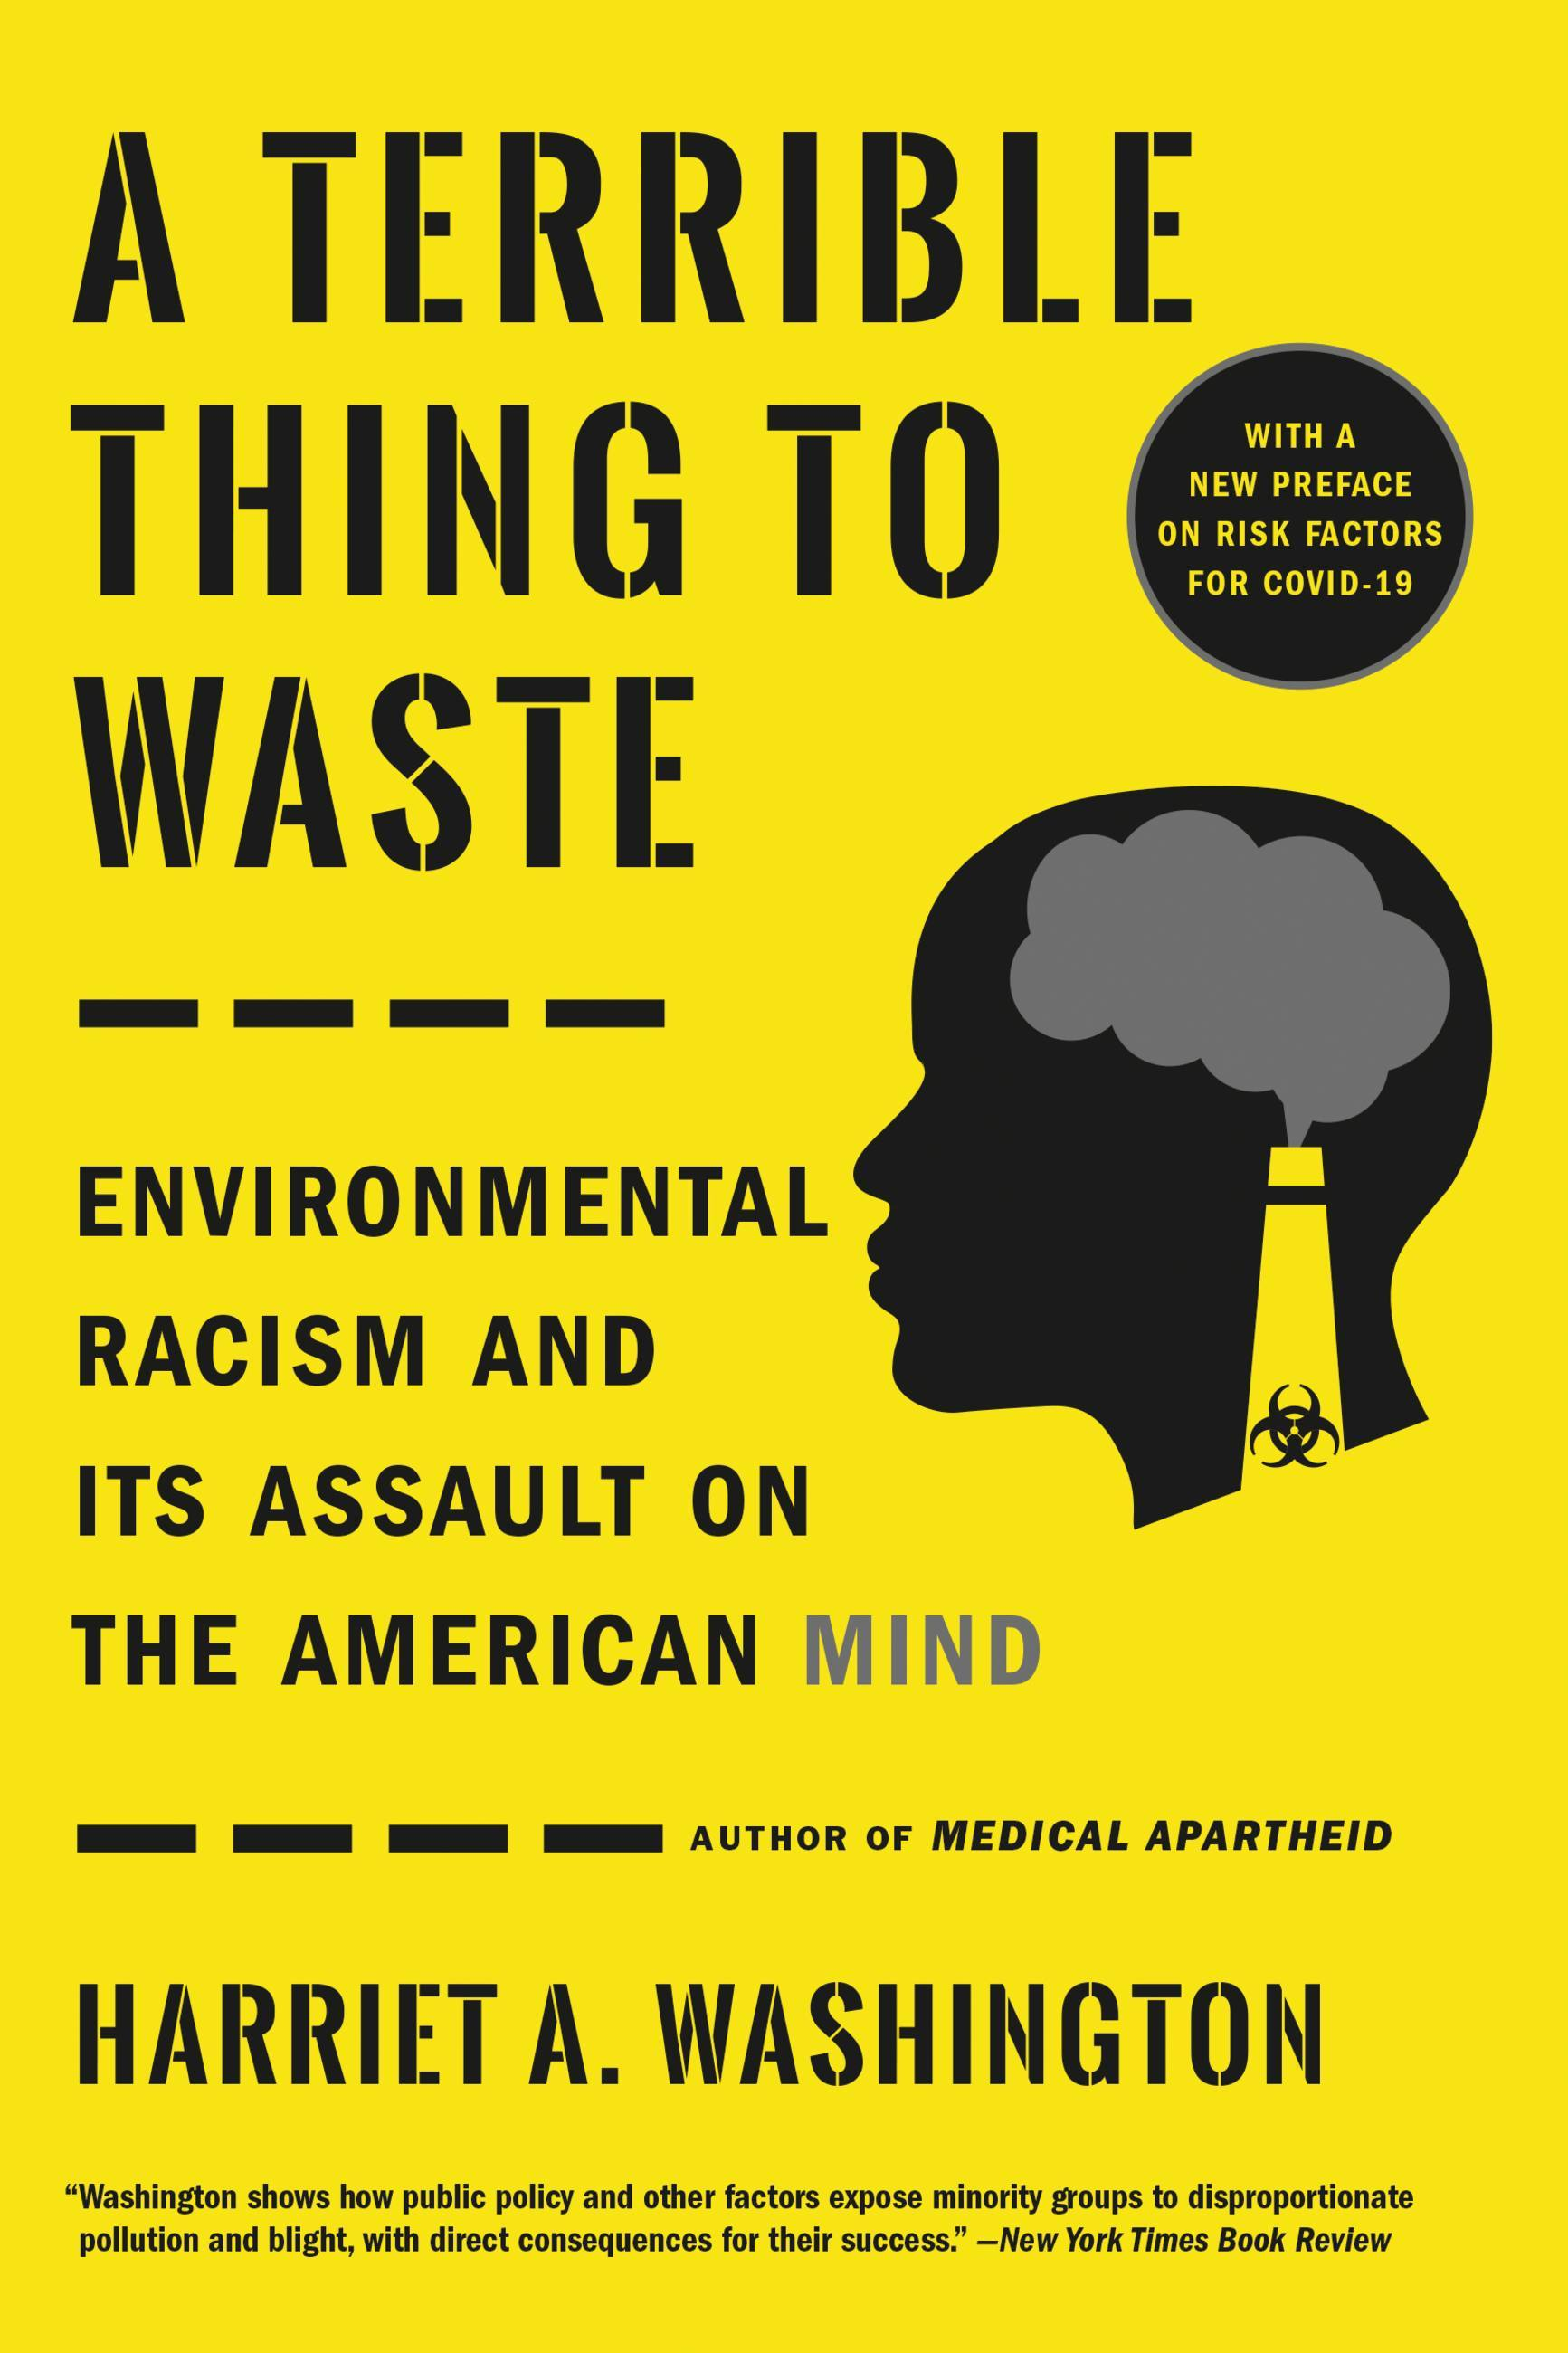 Harriet Washington - A Terrible Thing to Waste: Environmental Racism and its Assault on the American Mind